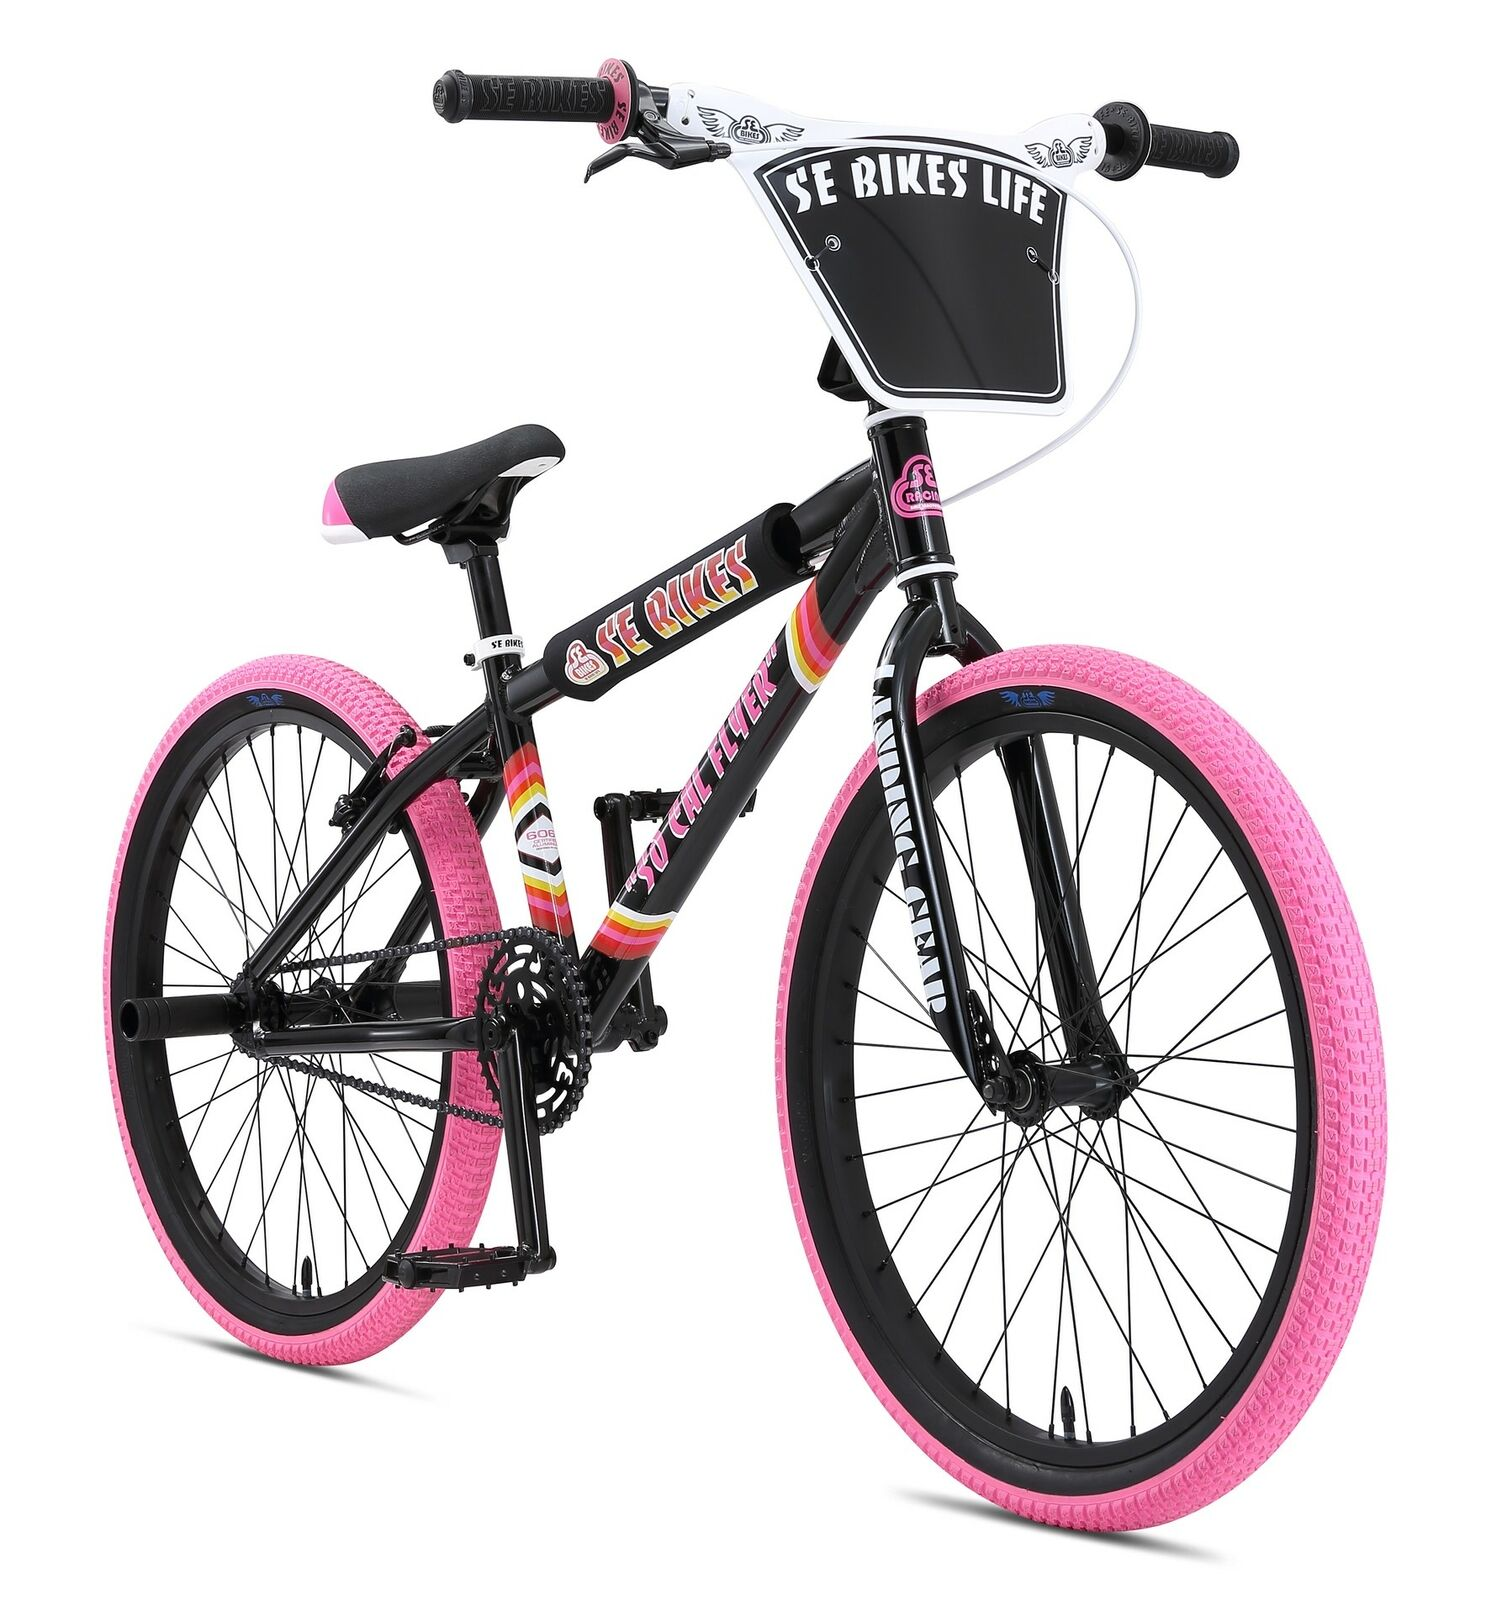 BMX Rad 24 Zoll SE Bikes So Cal Flyer Wheelie